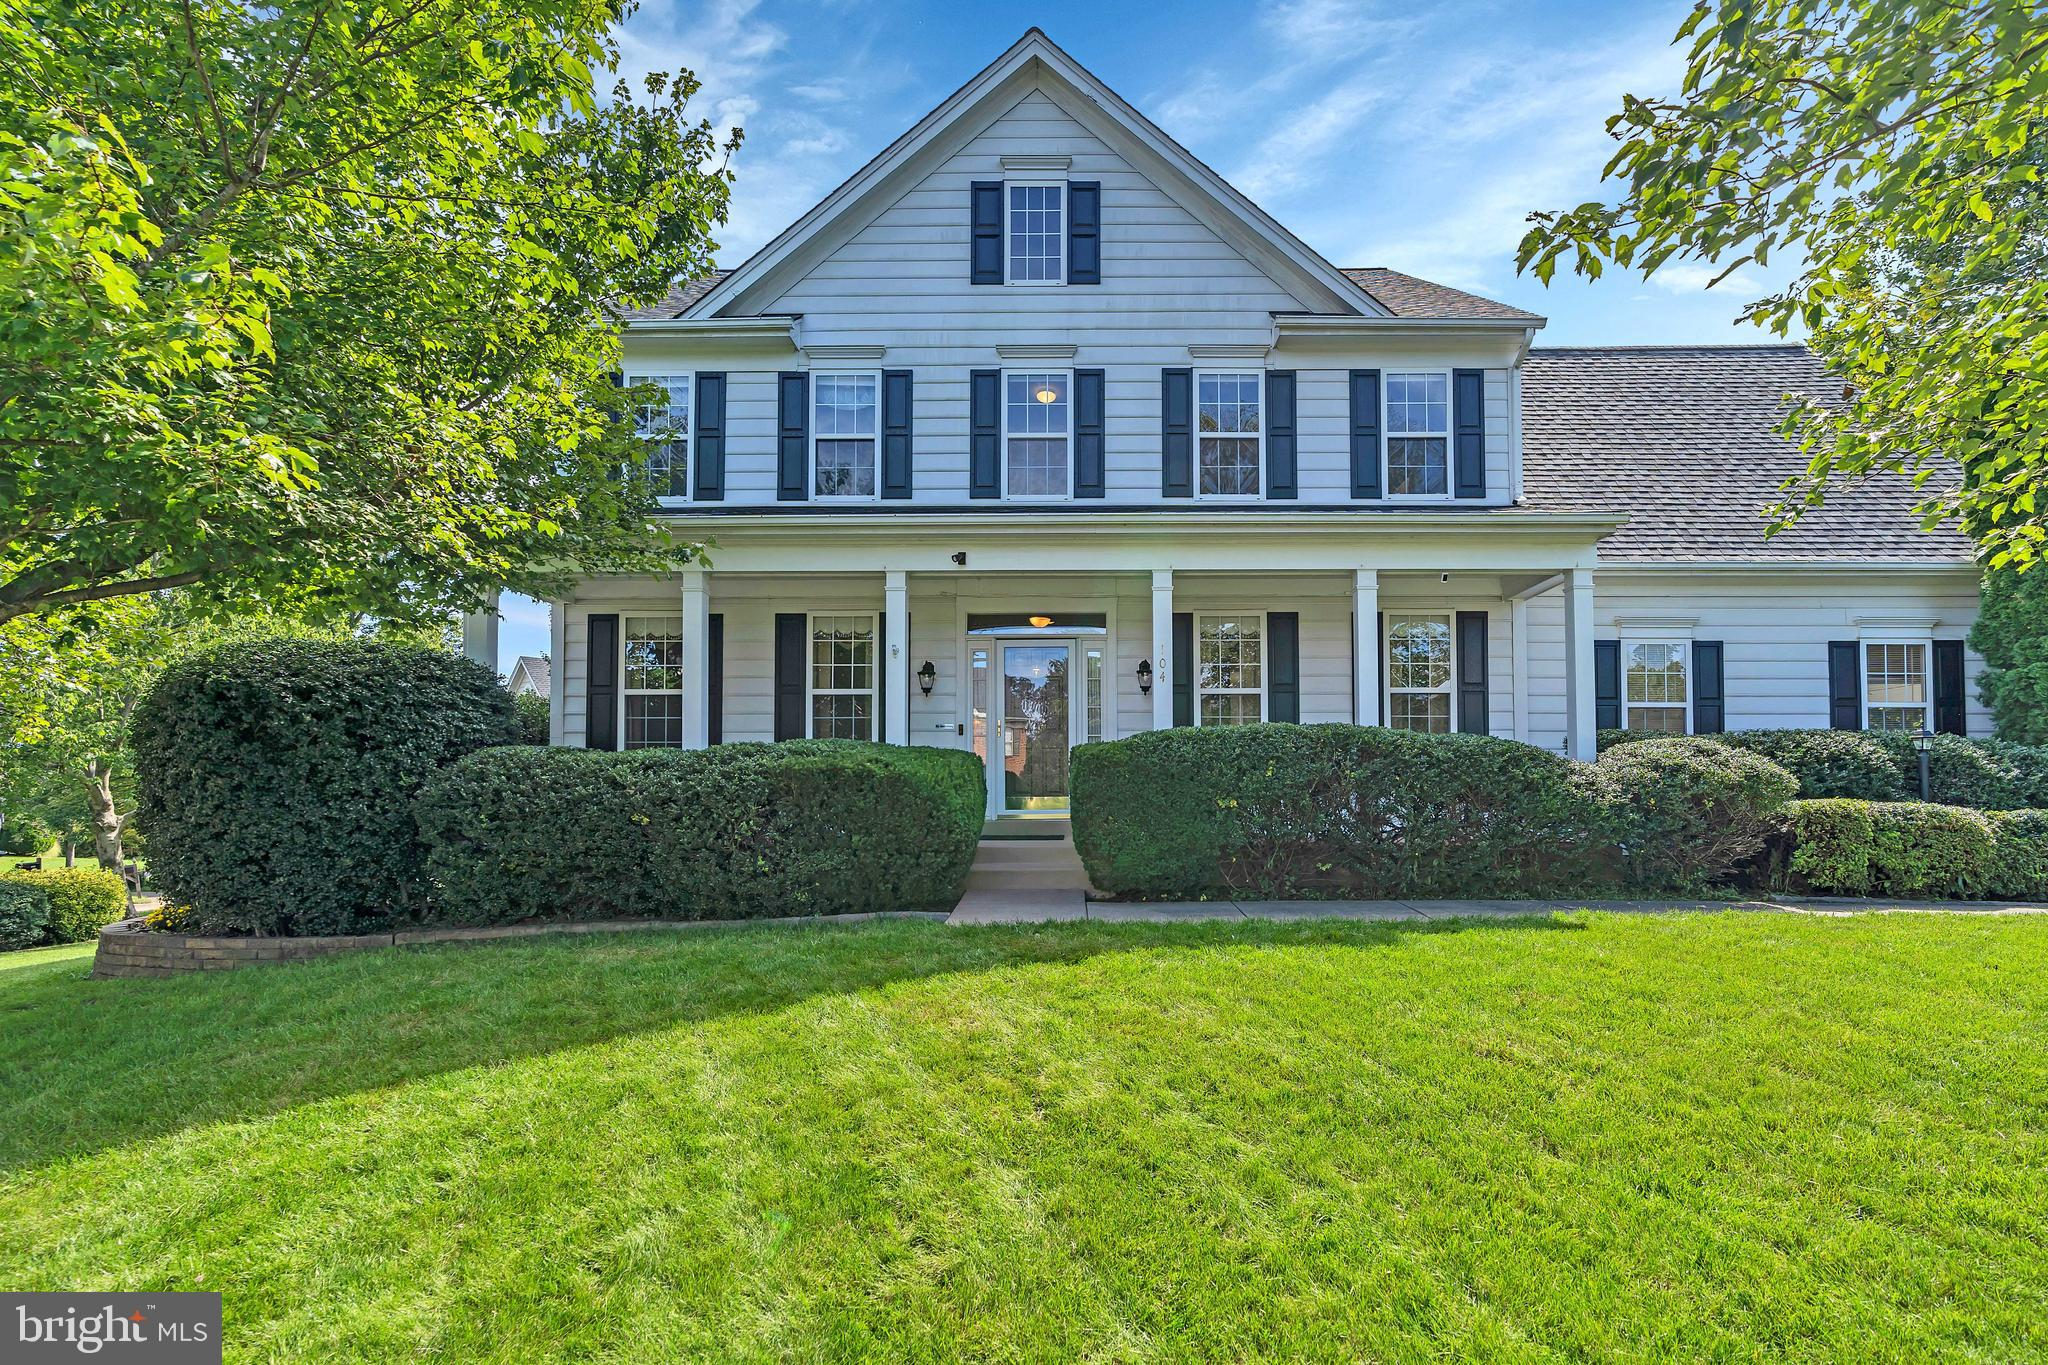 Beautiful single-family home in sought-after Greenway Farms on a premium corner lot with over 3,000